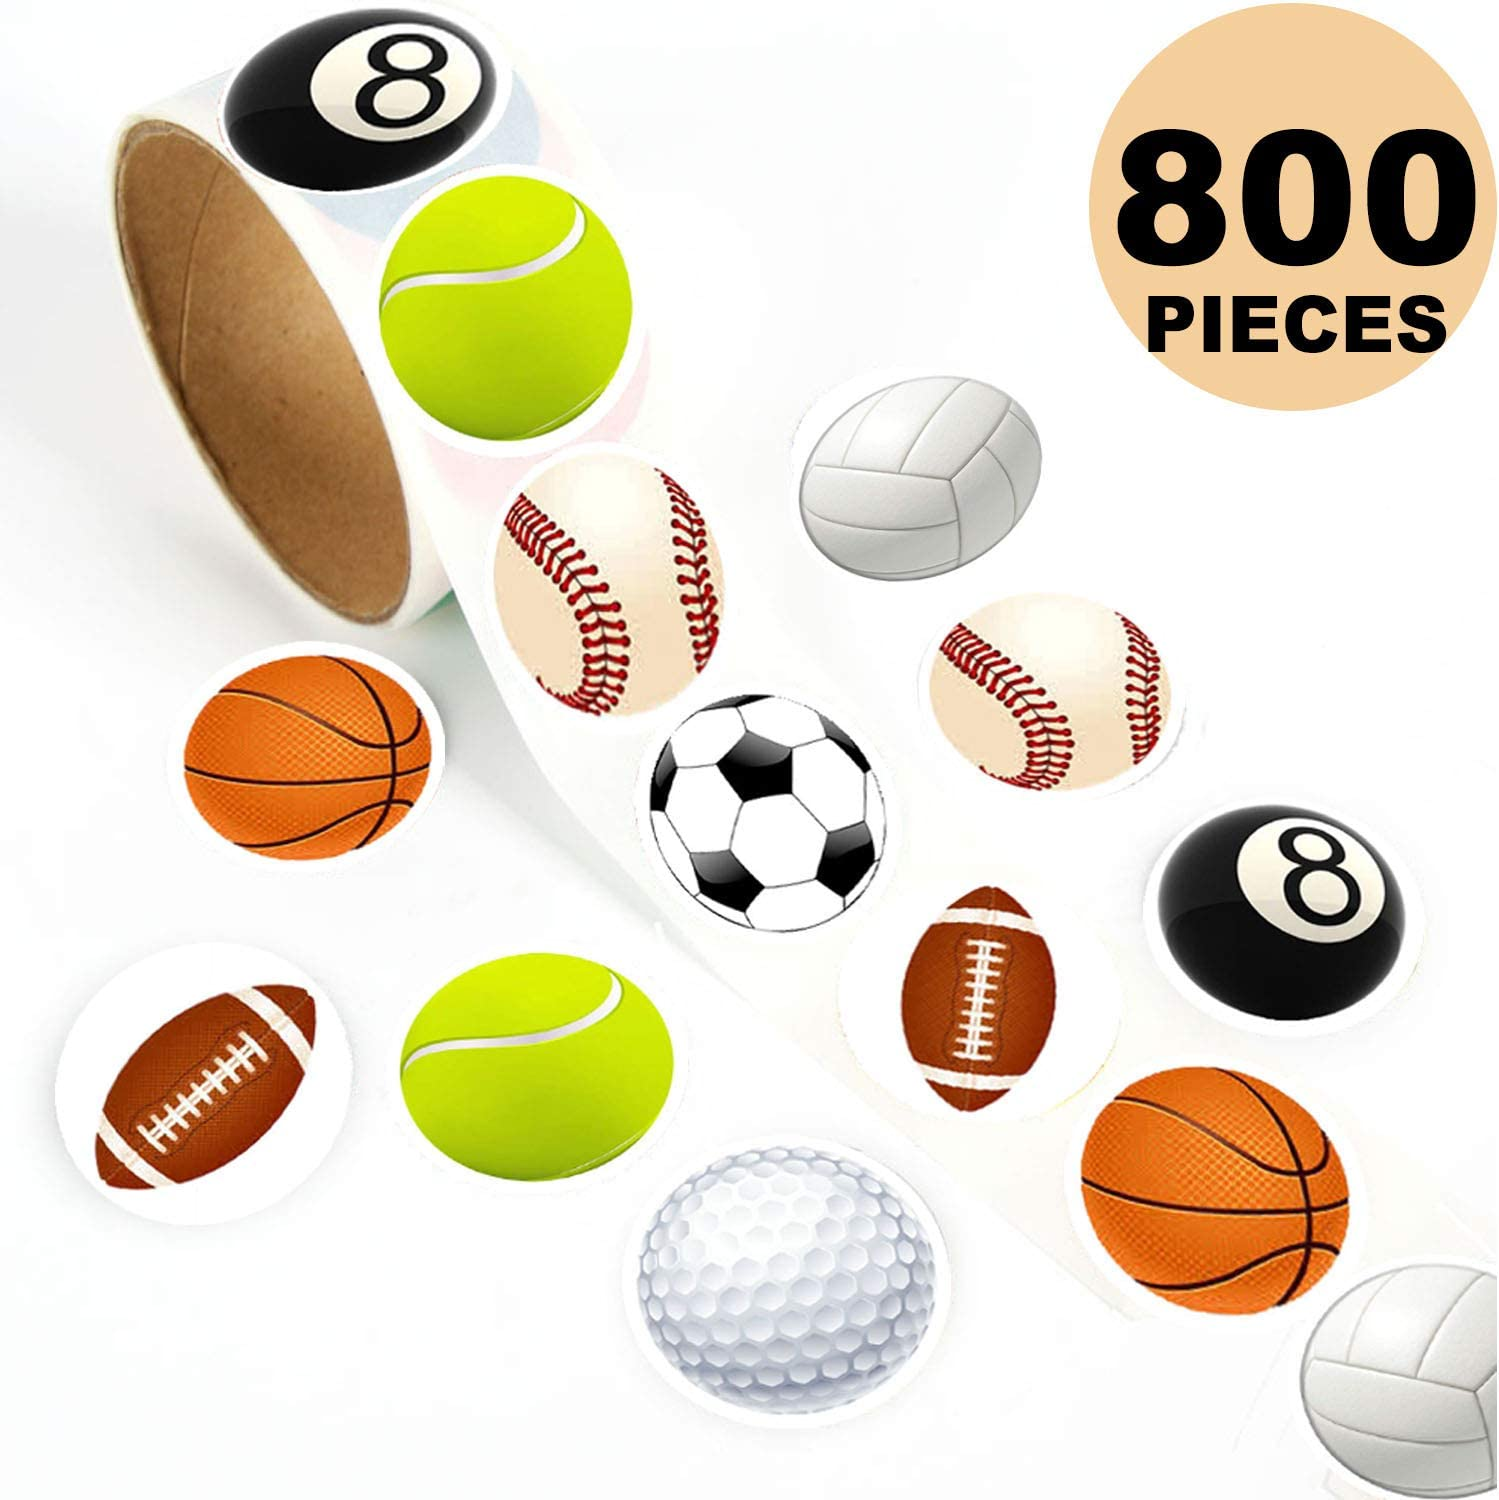 OuMuaMua Ball Cute Label Sticker Sheets- 800 Pcs Suitcase Stickers Vinyl Decals, 1-3/5 Inch Reusable Roll Sticker for Kids, Game Prizes, Teacher Reward, Party Favor & Supplies, 8 Styles